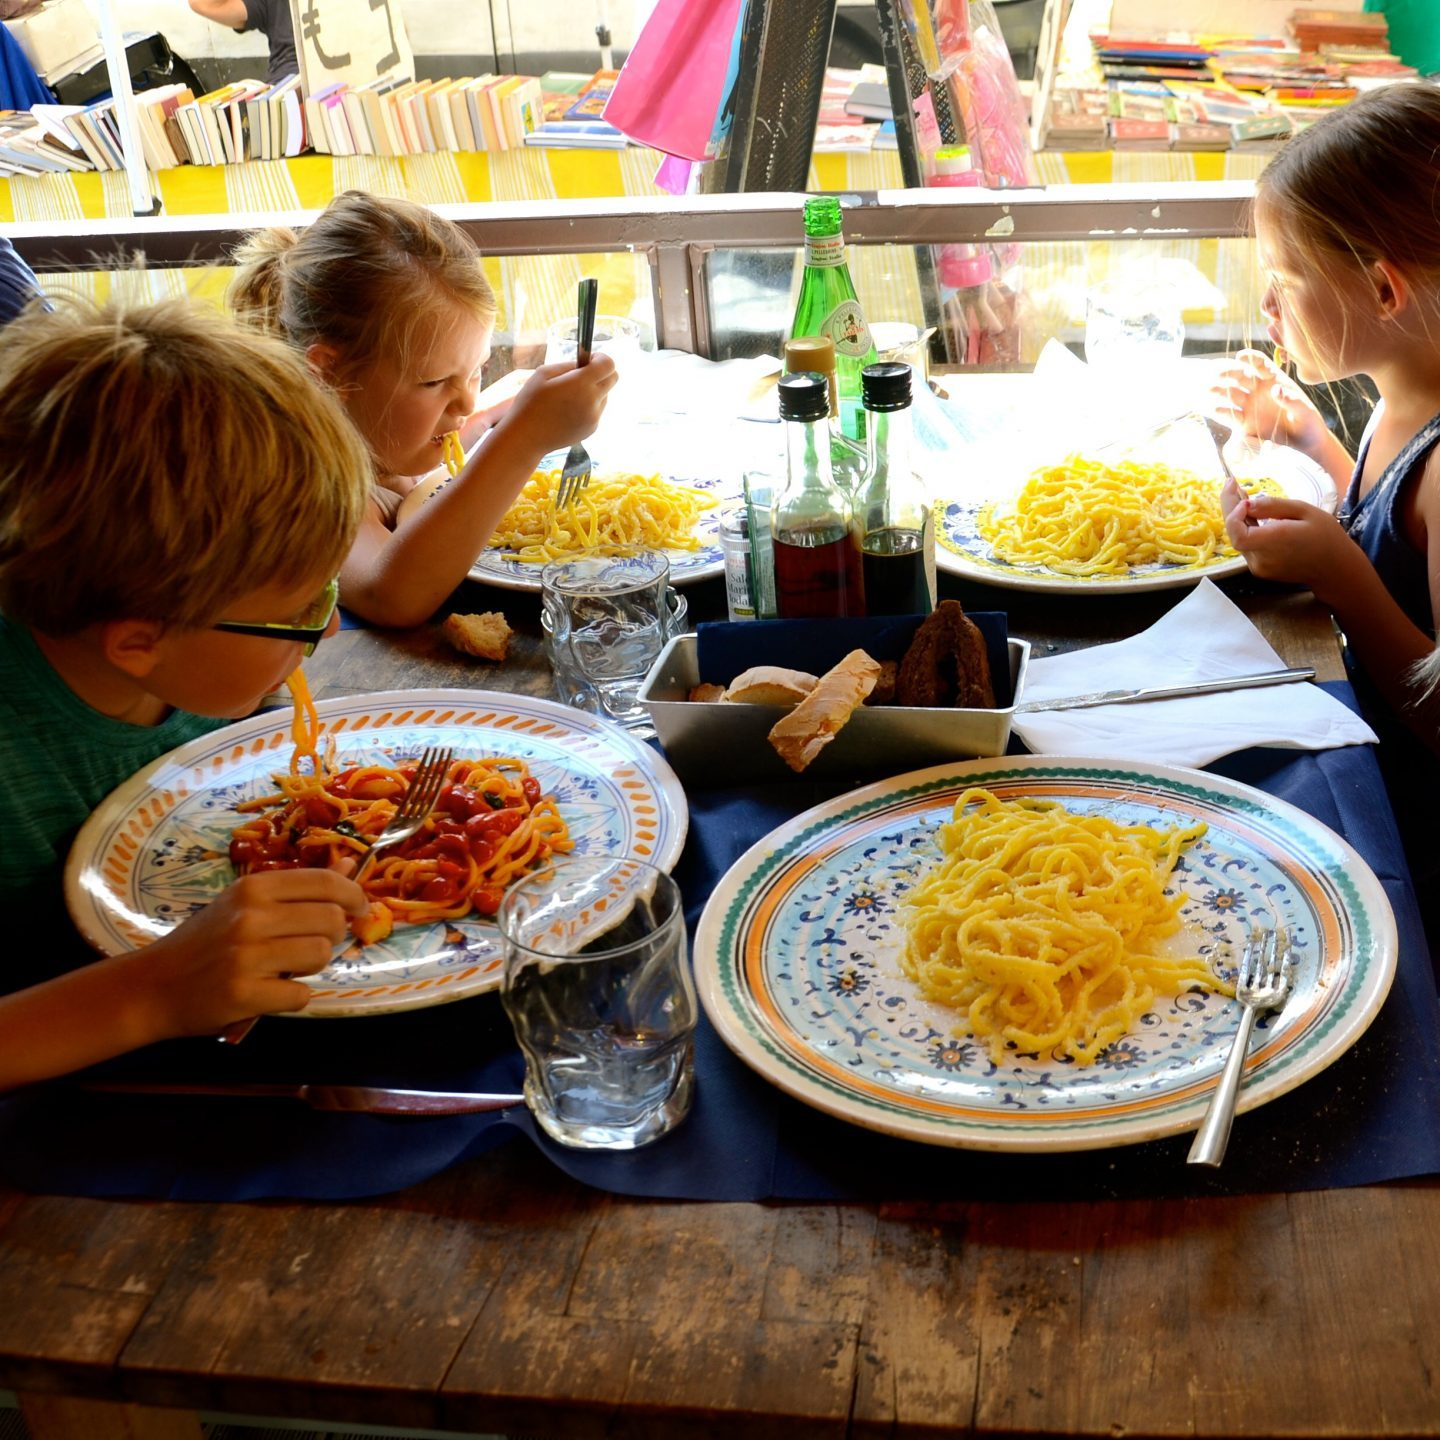 Chowing down on spaghetti in Florence.